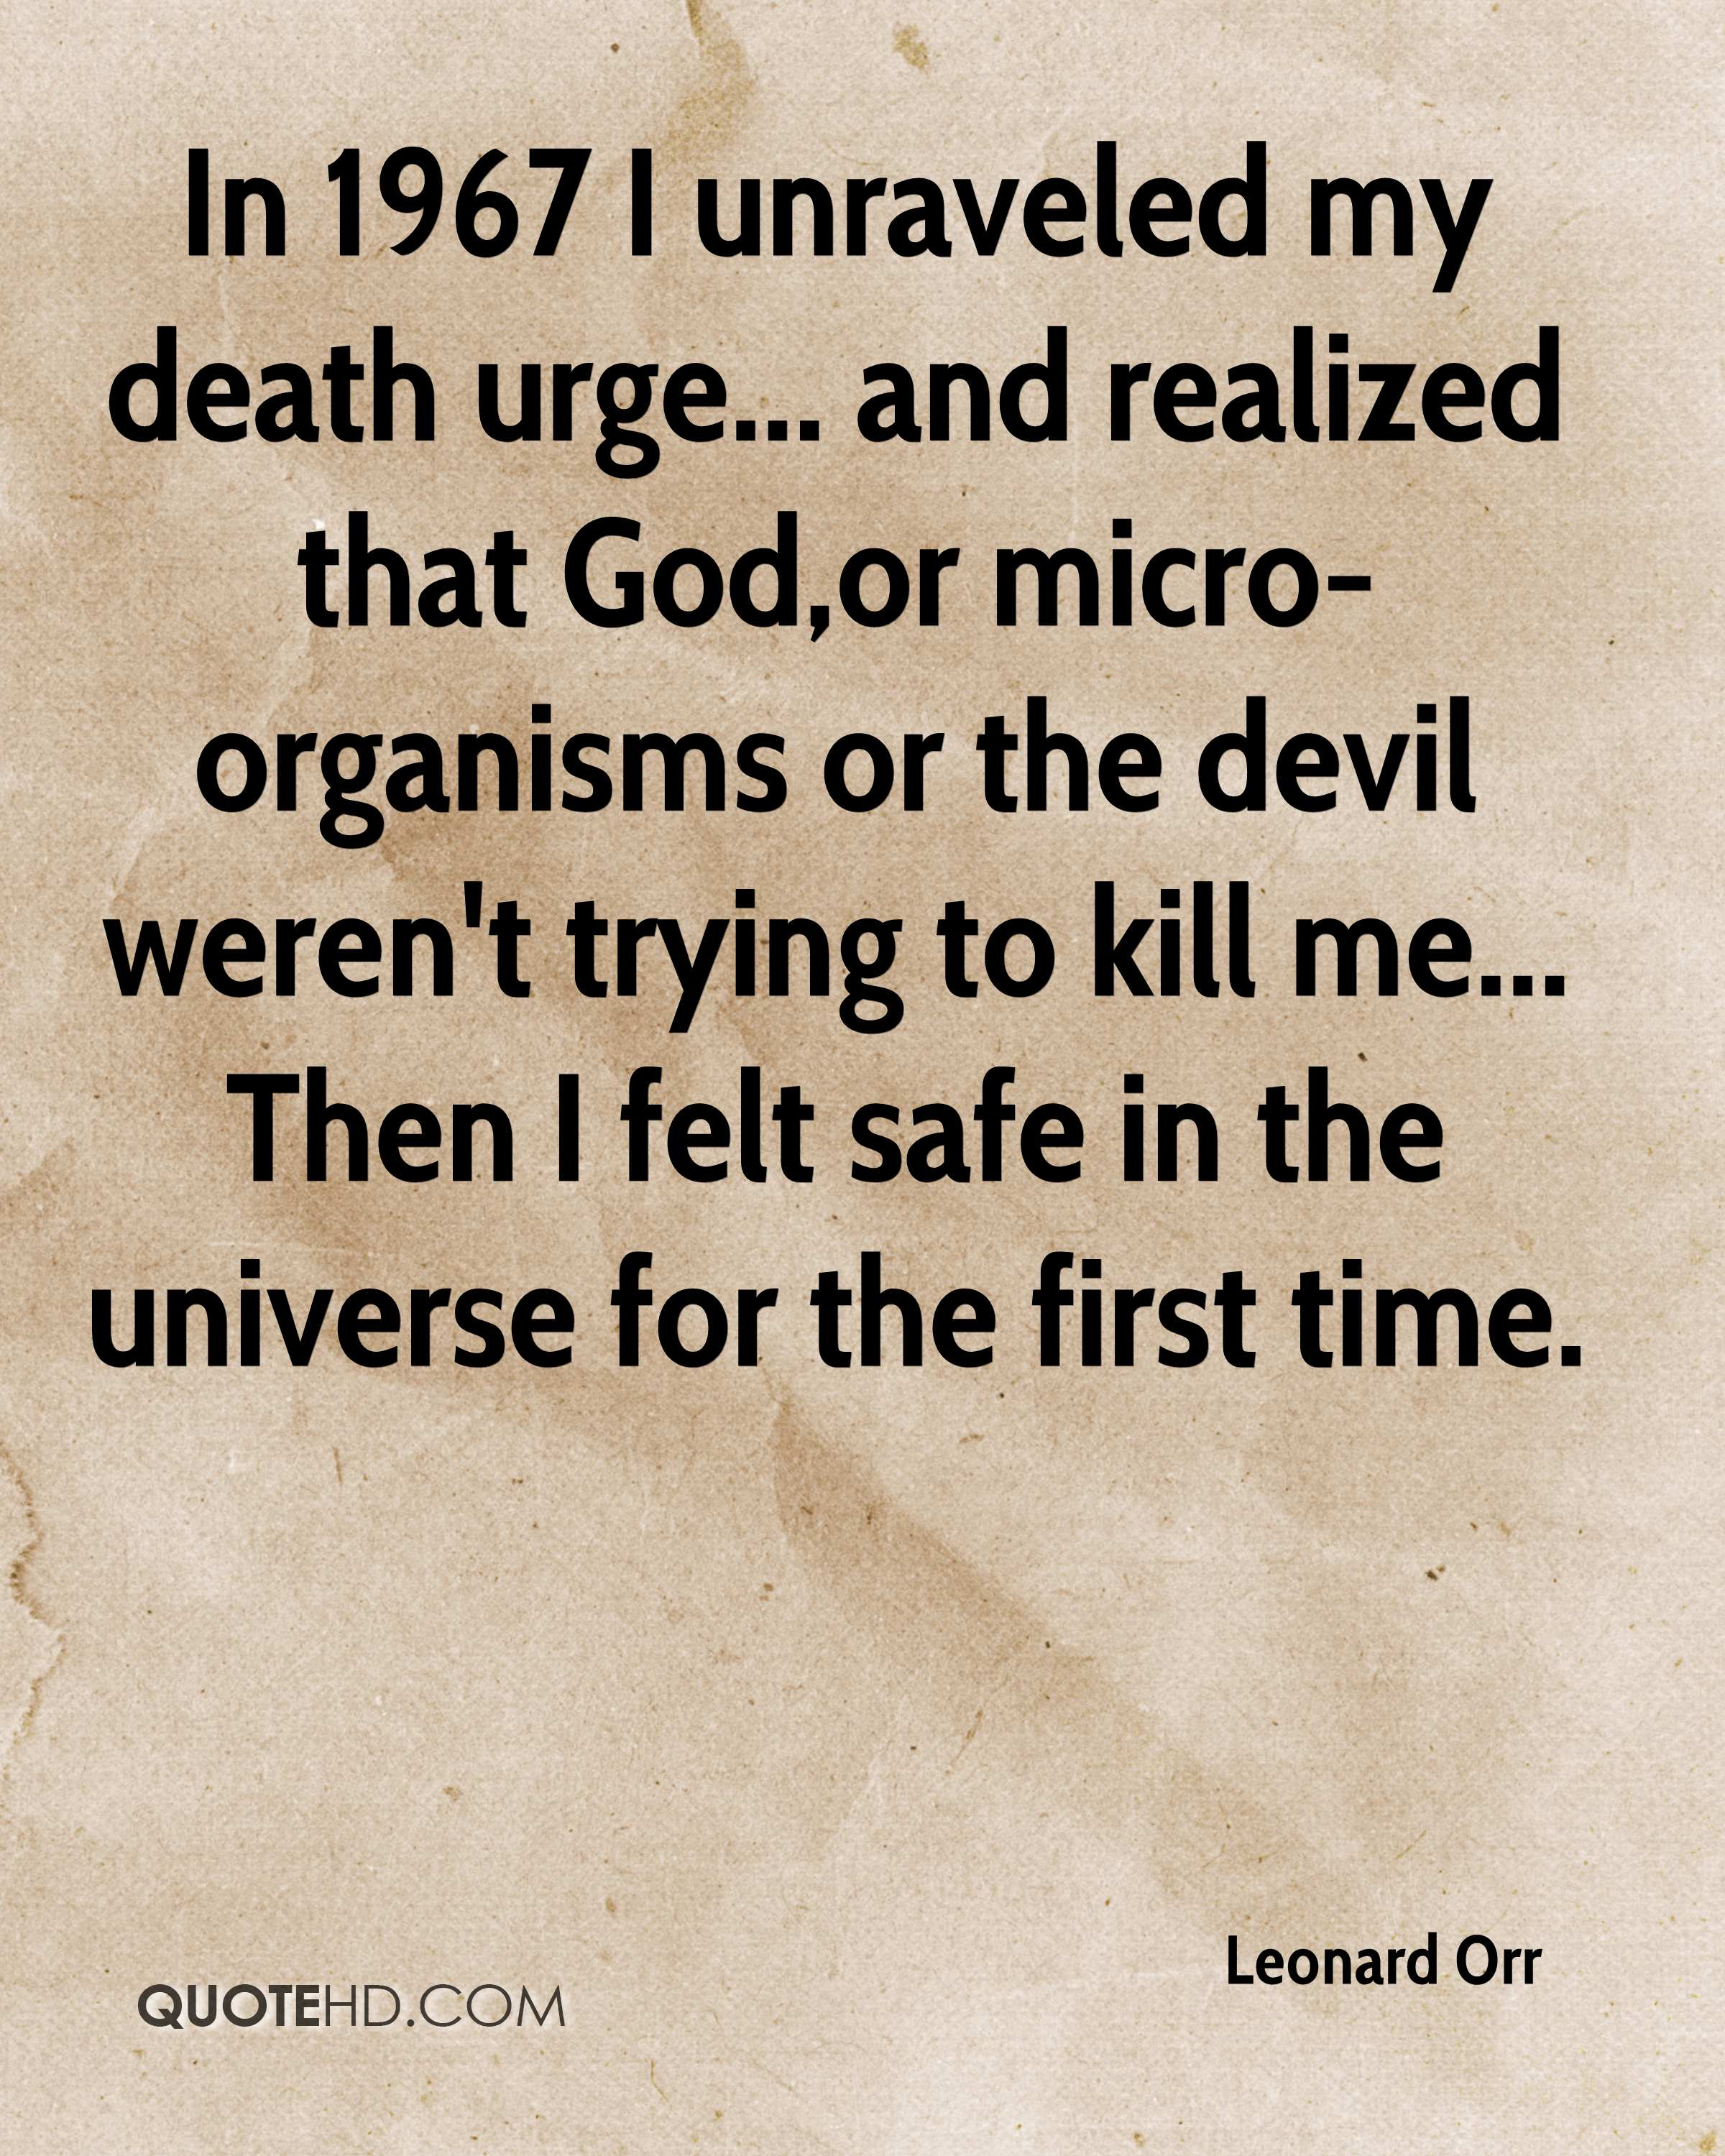 In 1967 I unraveled my death urge... and realized that God,or micro-organisms or the devil weren't trying to kill me... Then I felt safe in the universe for the first time.